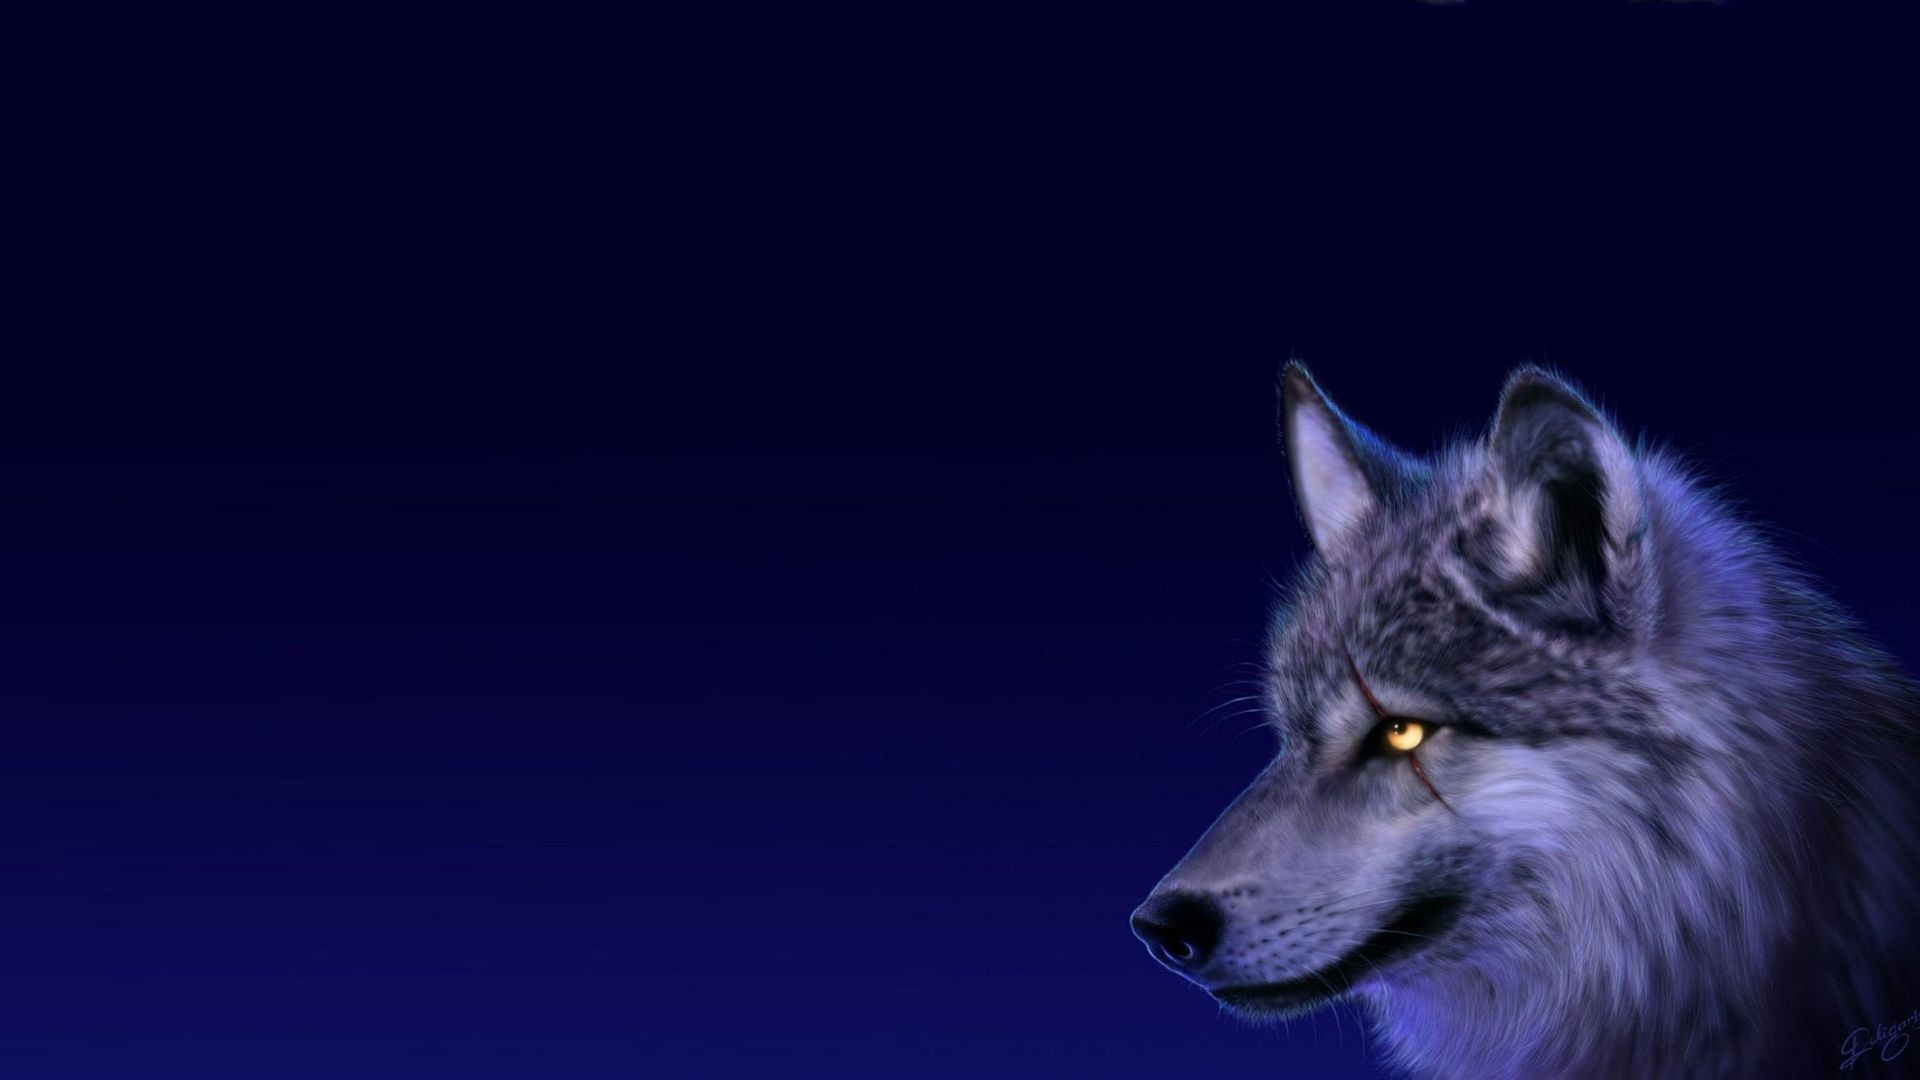 Res: 1920x1080, undefined Animated Wolf Wallpapers (41 Wallpapers) | Adorable Wallpapers